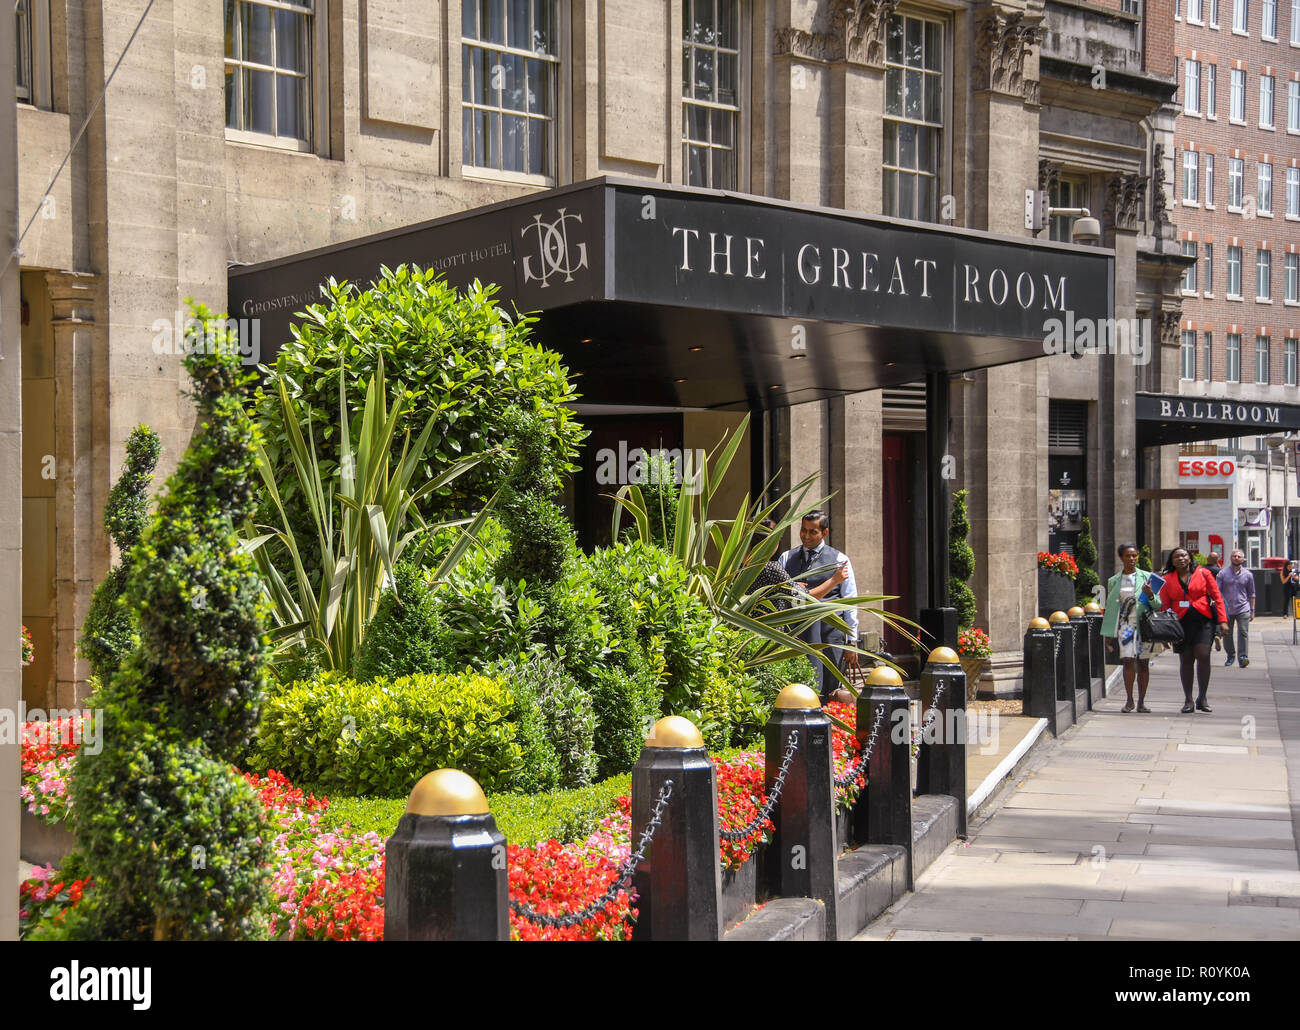 Exterior view of the entrance to The Great Room at the Grosvenor Hotel on Park Lane, London - Stock Image